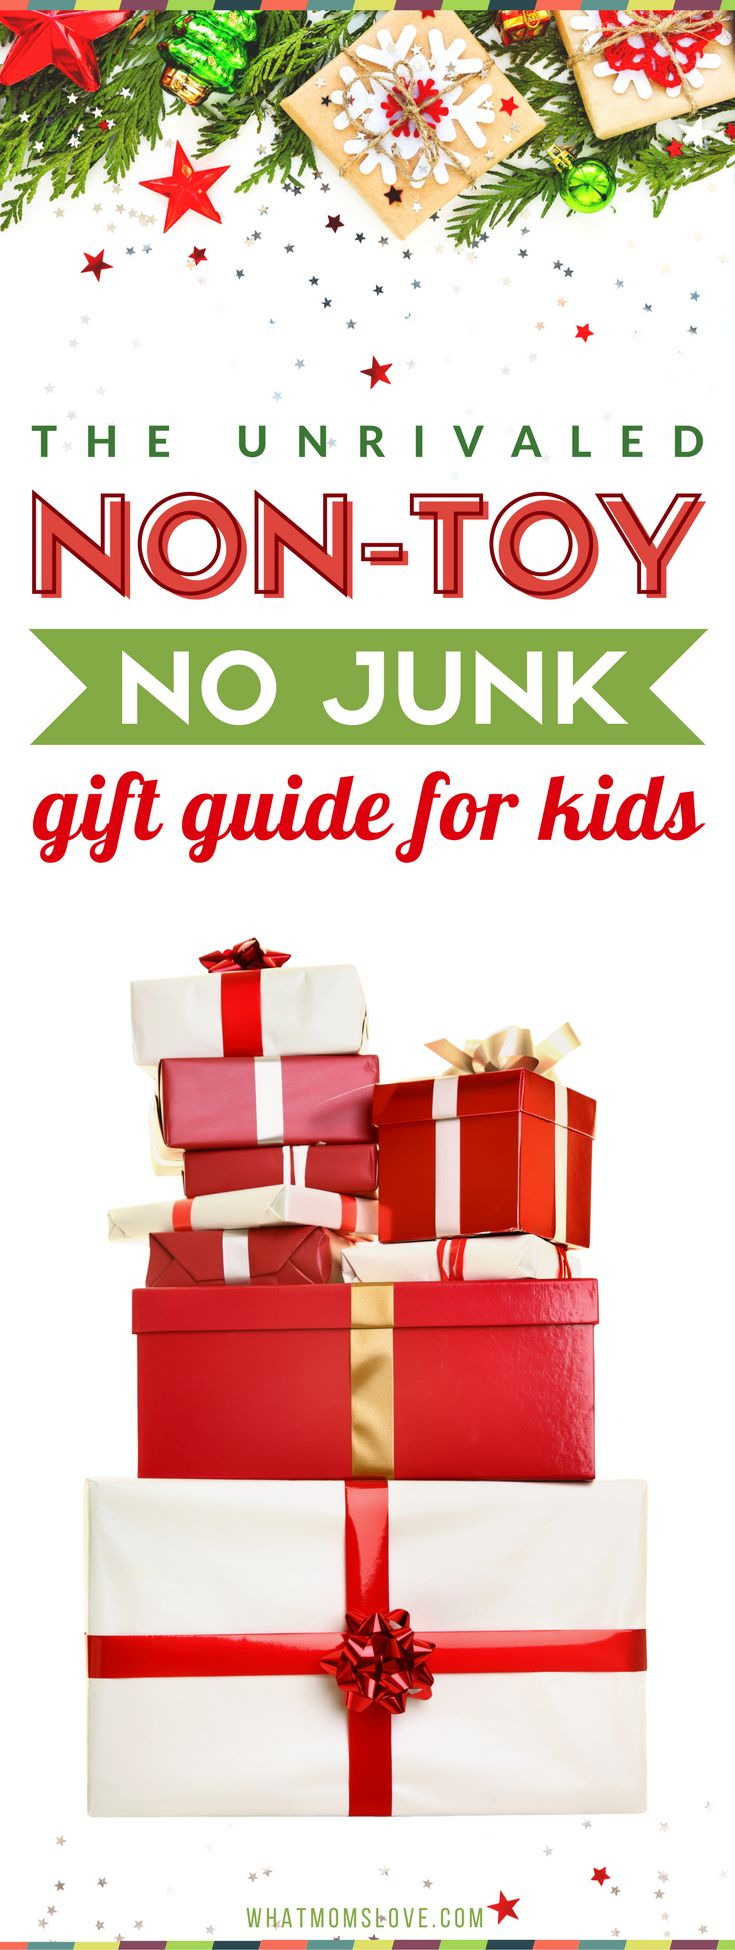 Best non toy gifts for kids | Fun ideas for boys and girls of all ages - from babies, to 1 year olds to toddlers to tweens and teens. High quality, fun gifts that aren't toys - perfect for Christmas, the holidays and birthdays. #gift #giftguide #giftsforkids #christmas #birthday #presents #kids #toddler #tween #teen